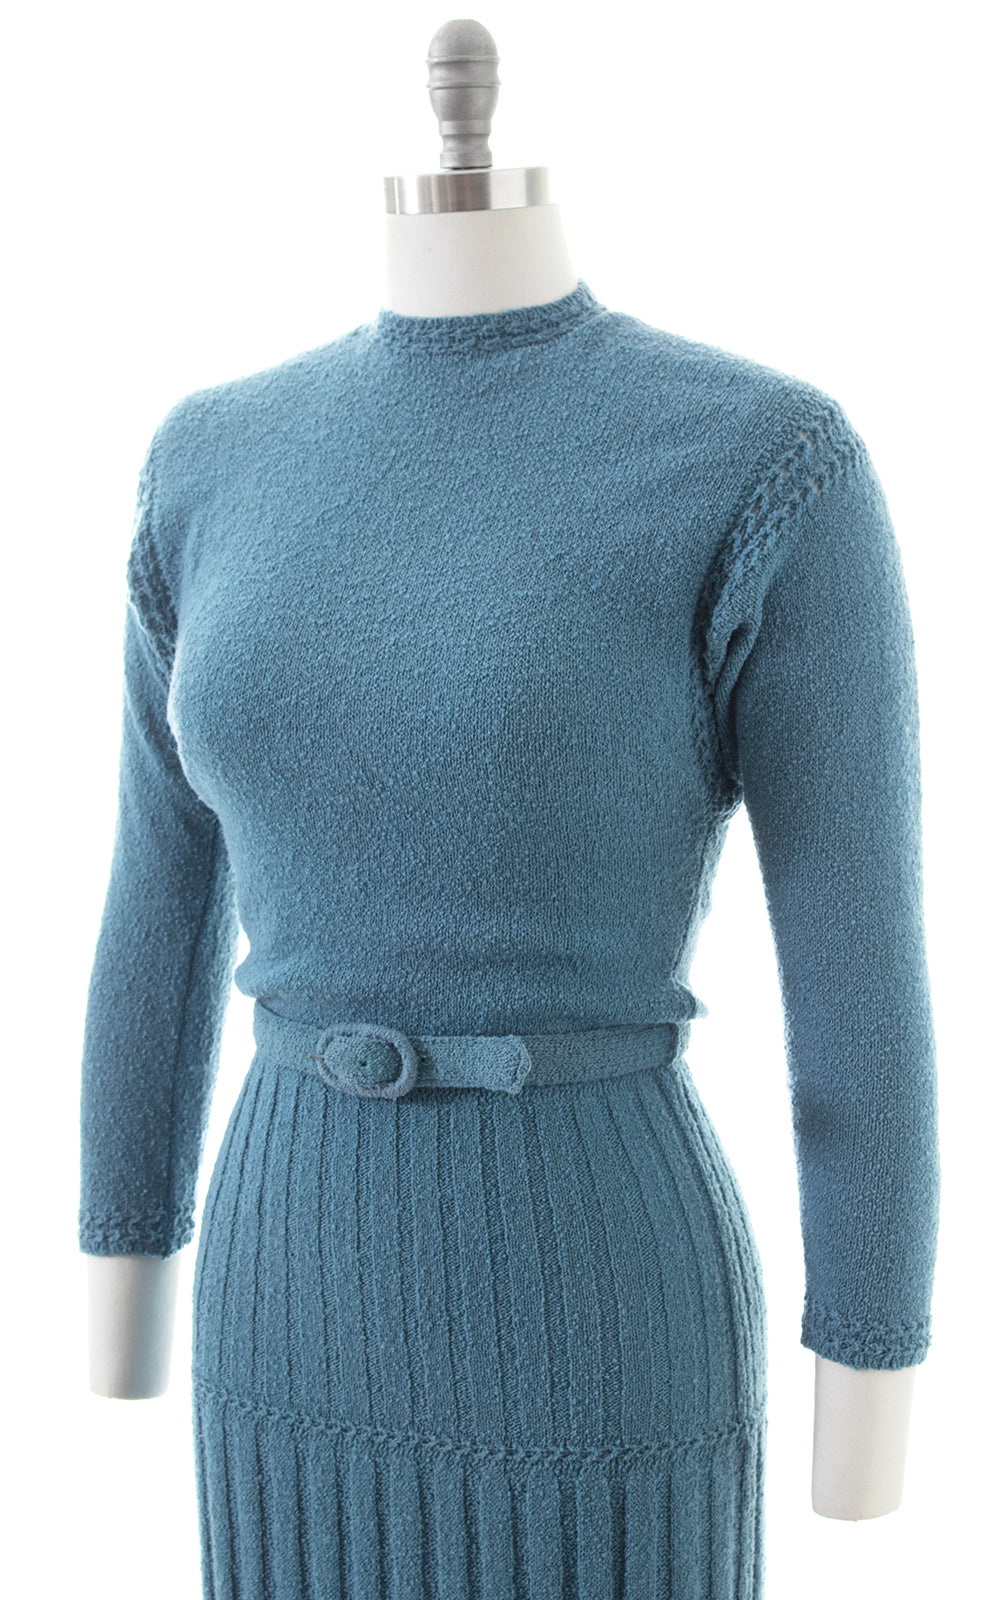 1950s Lass o' Scotland Knit Wool Chenille Sweater Dress